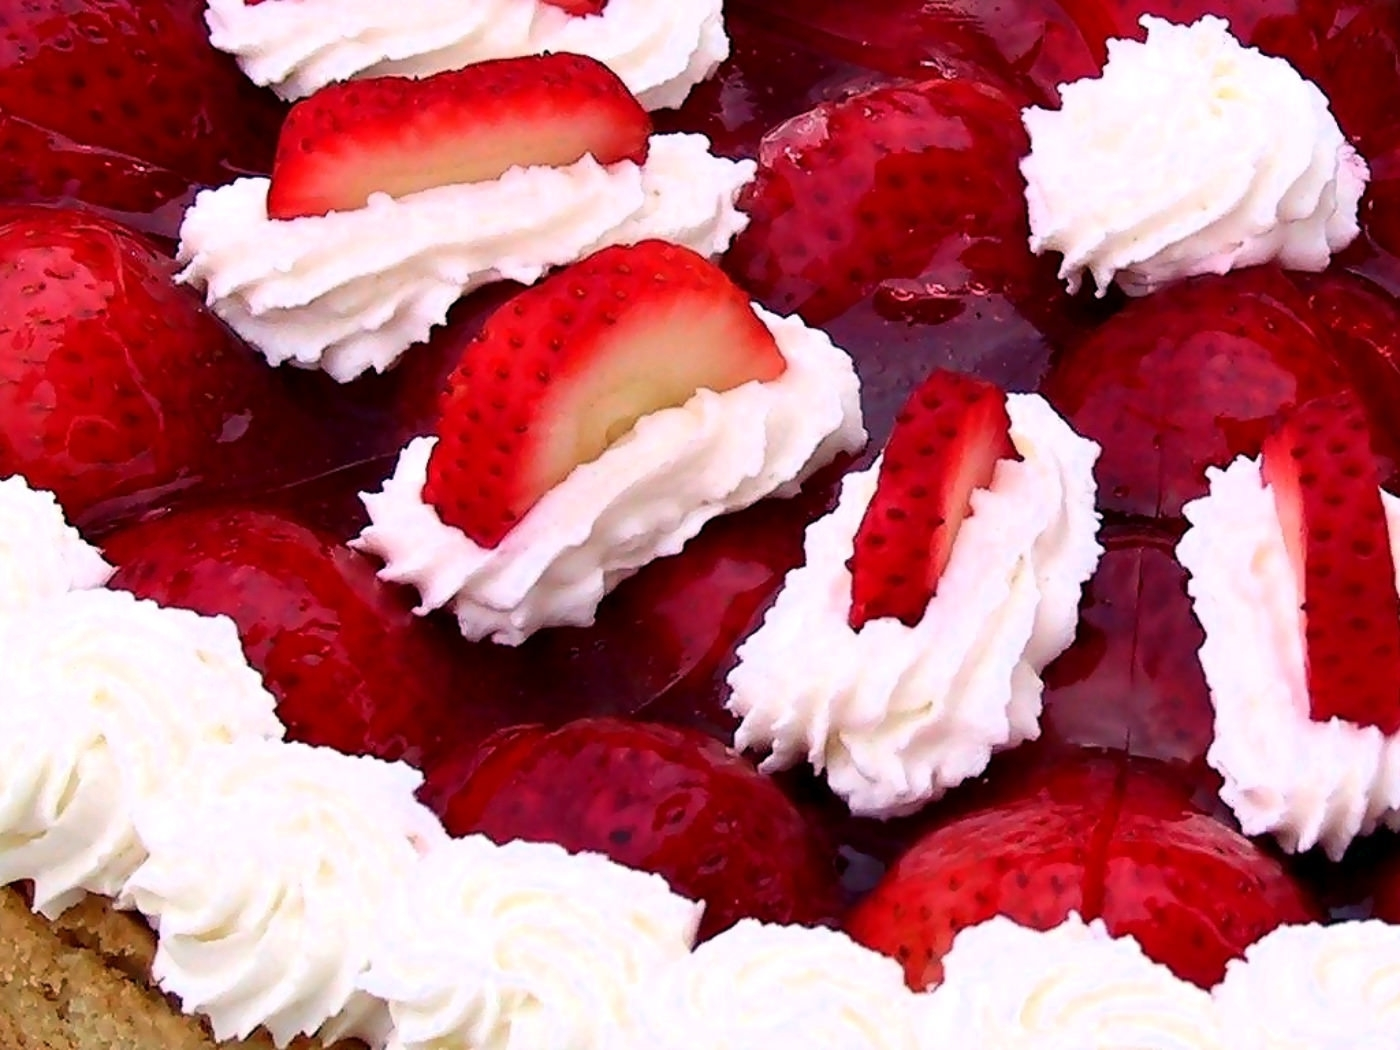 Food Strawberry Wallpaper